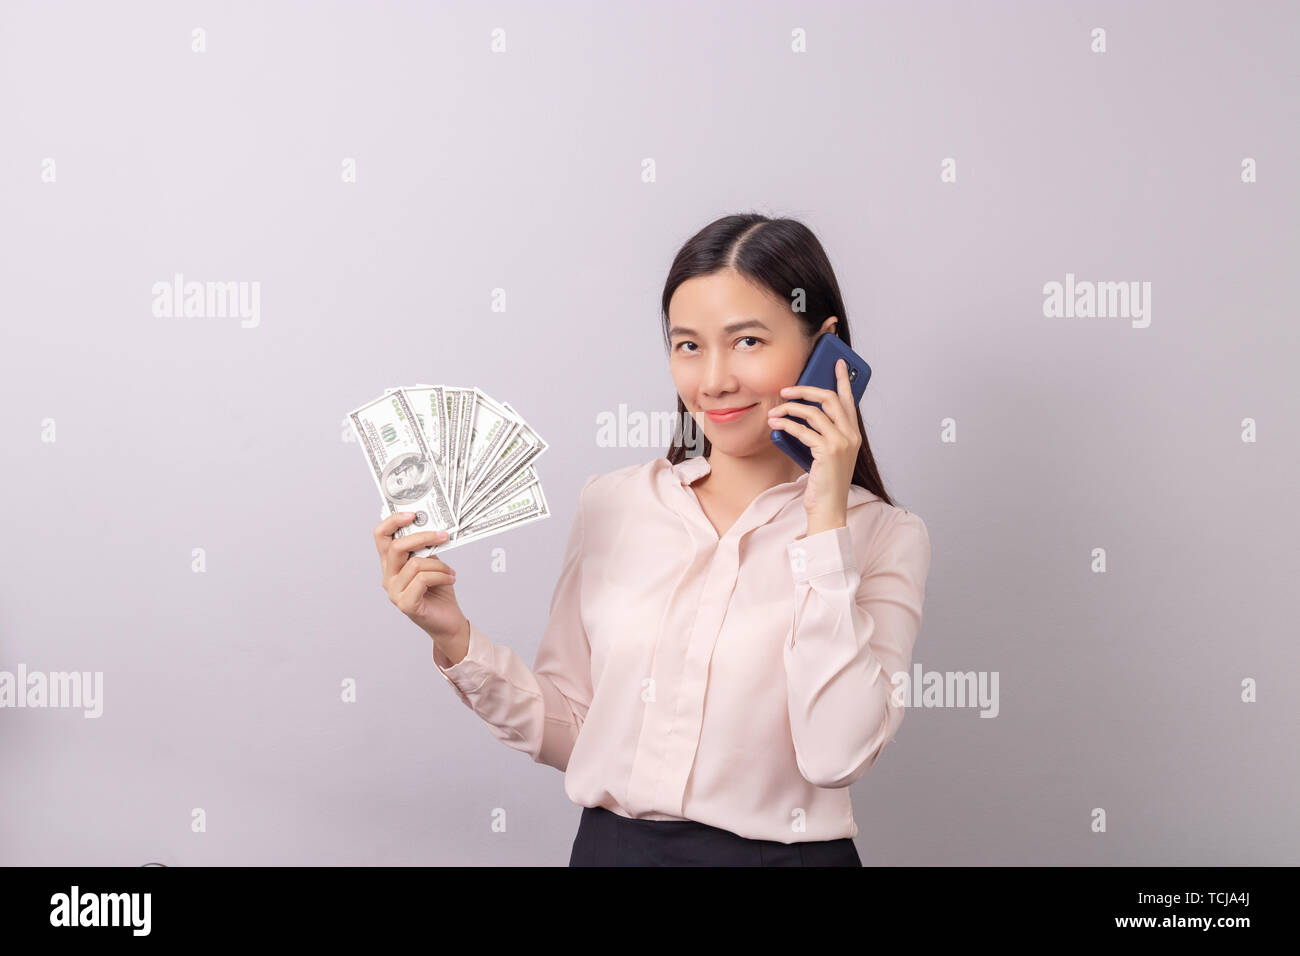 Asian beautiful woman holding banknote money in hand and mobile phone in another hand isolated on grey background. commercial business by phone concep Stock Photo